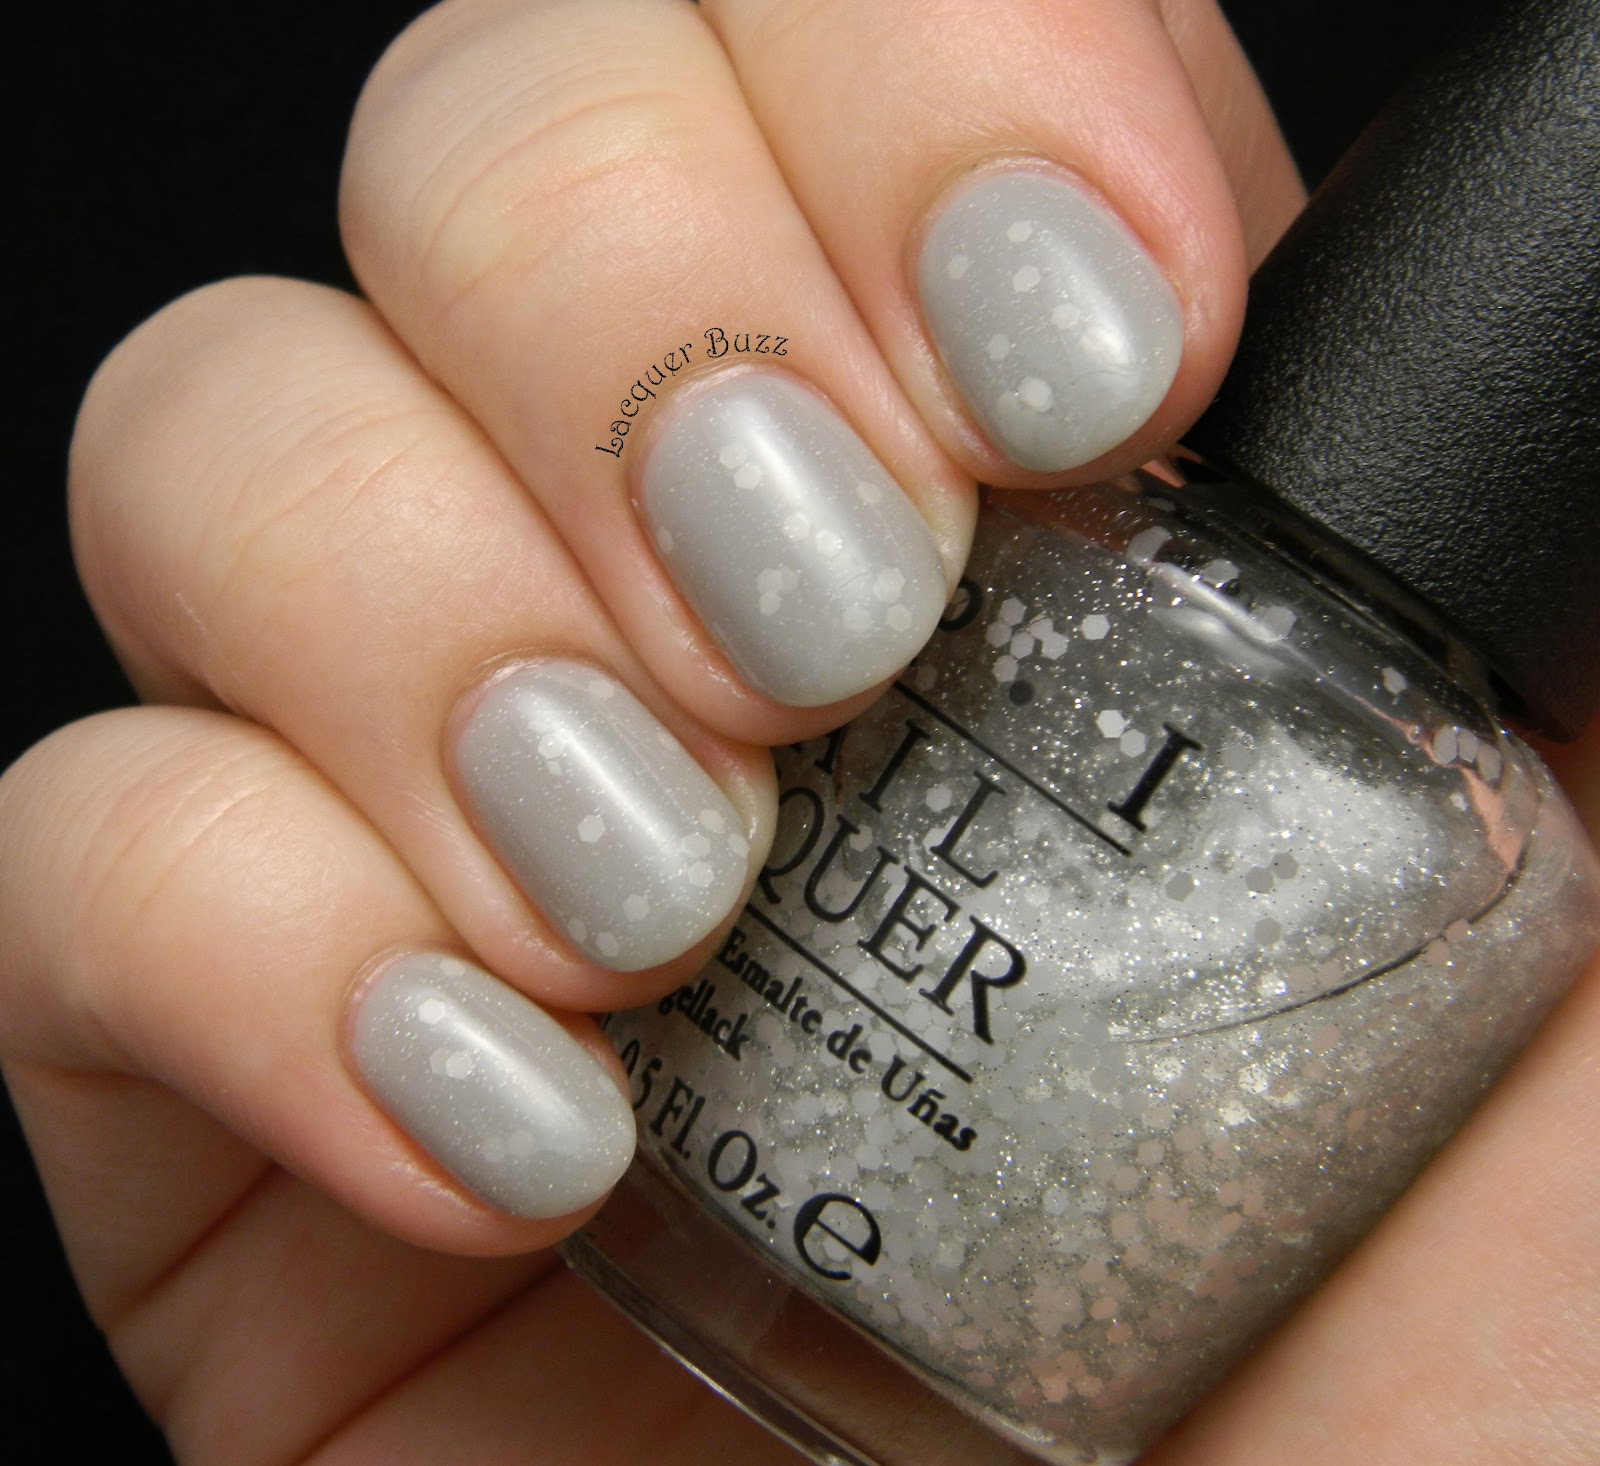 Lacquer Buzz: TPA Group Challenge: Make Your Own Nail Polish